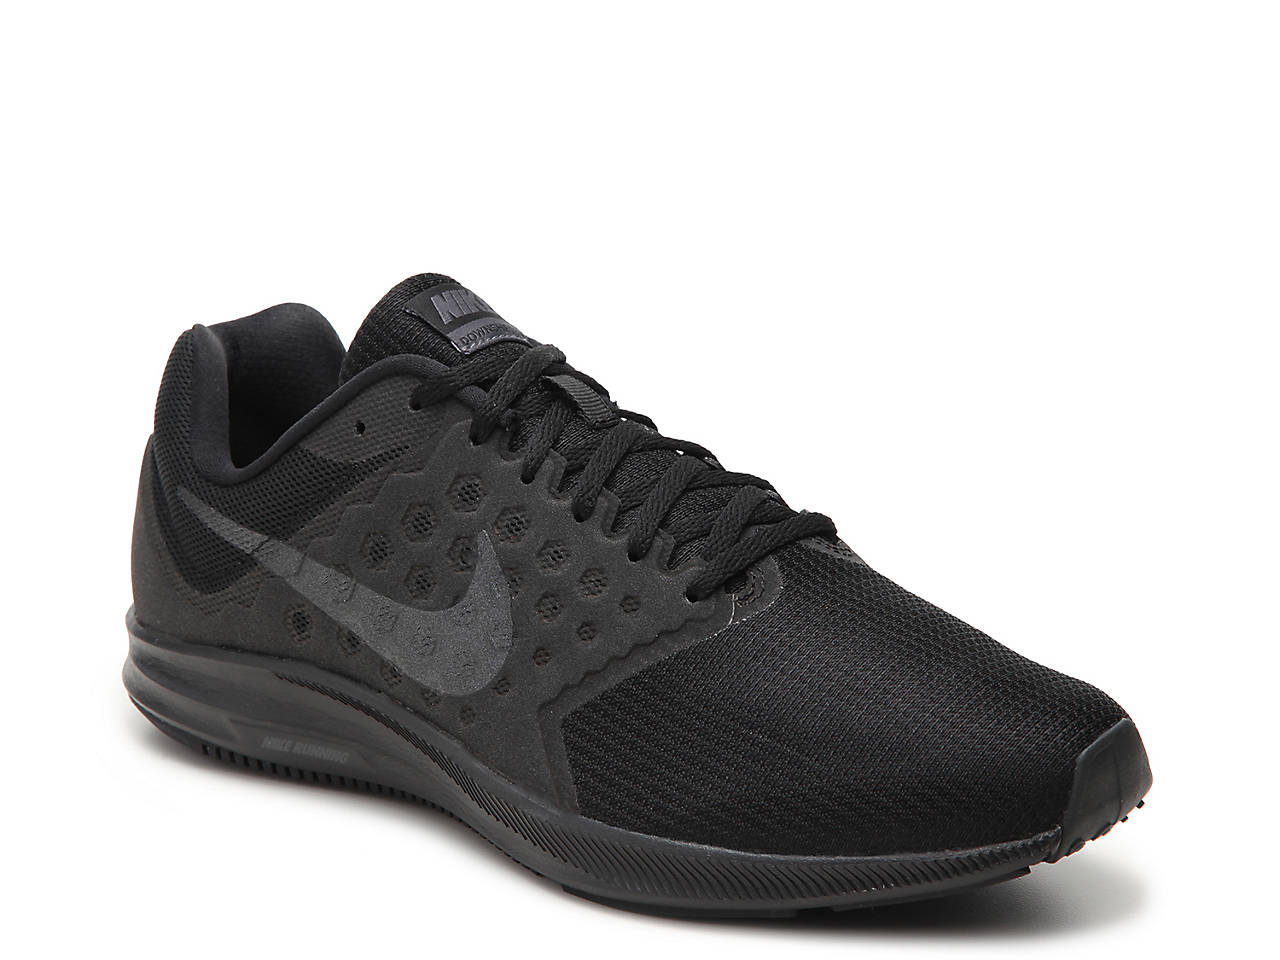 a2d5fe8eb027 Nike Downshifter 7 Lightweight Running Shoe - Men s Men s Shoes